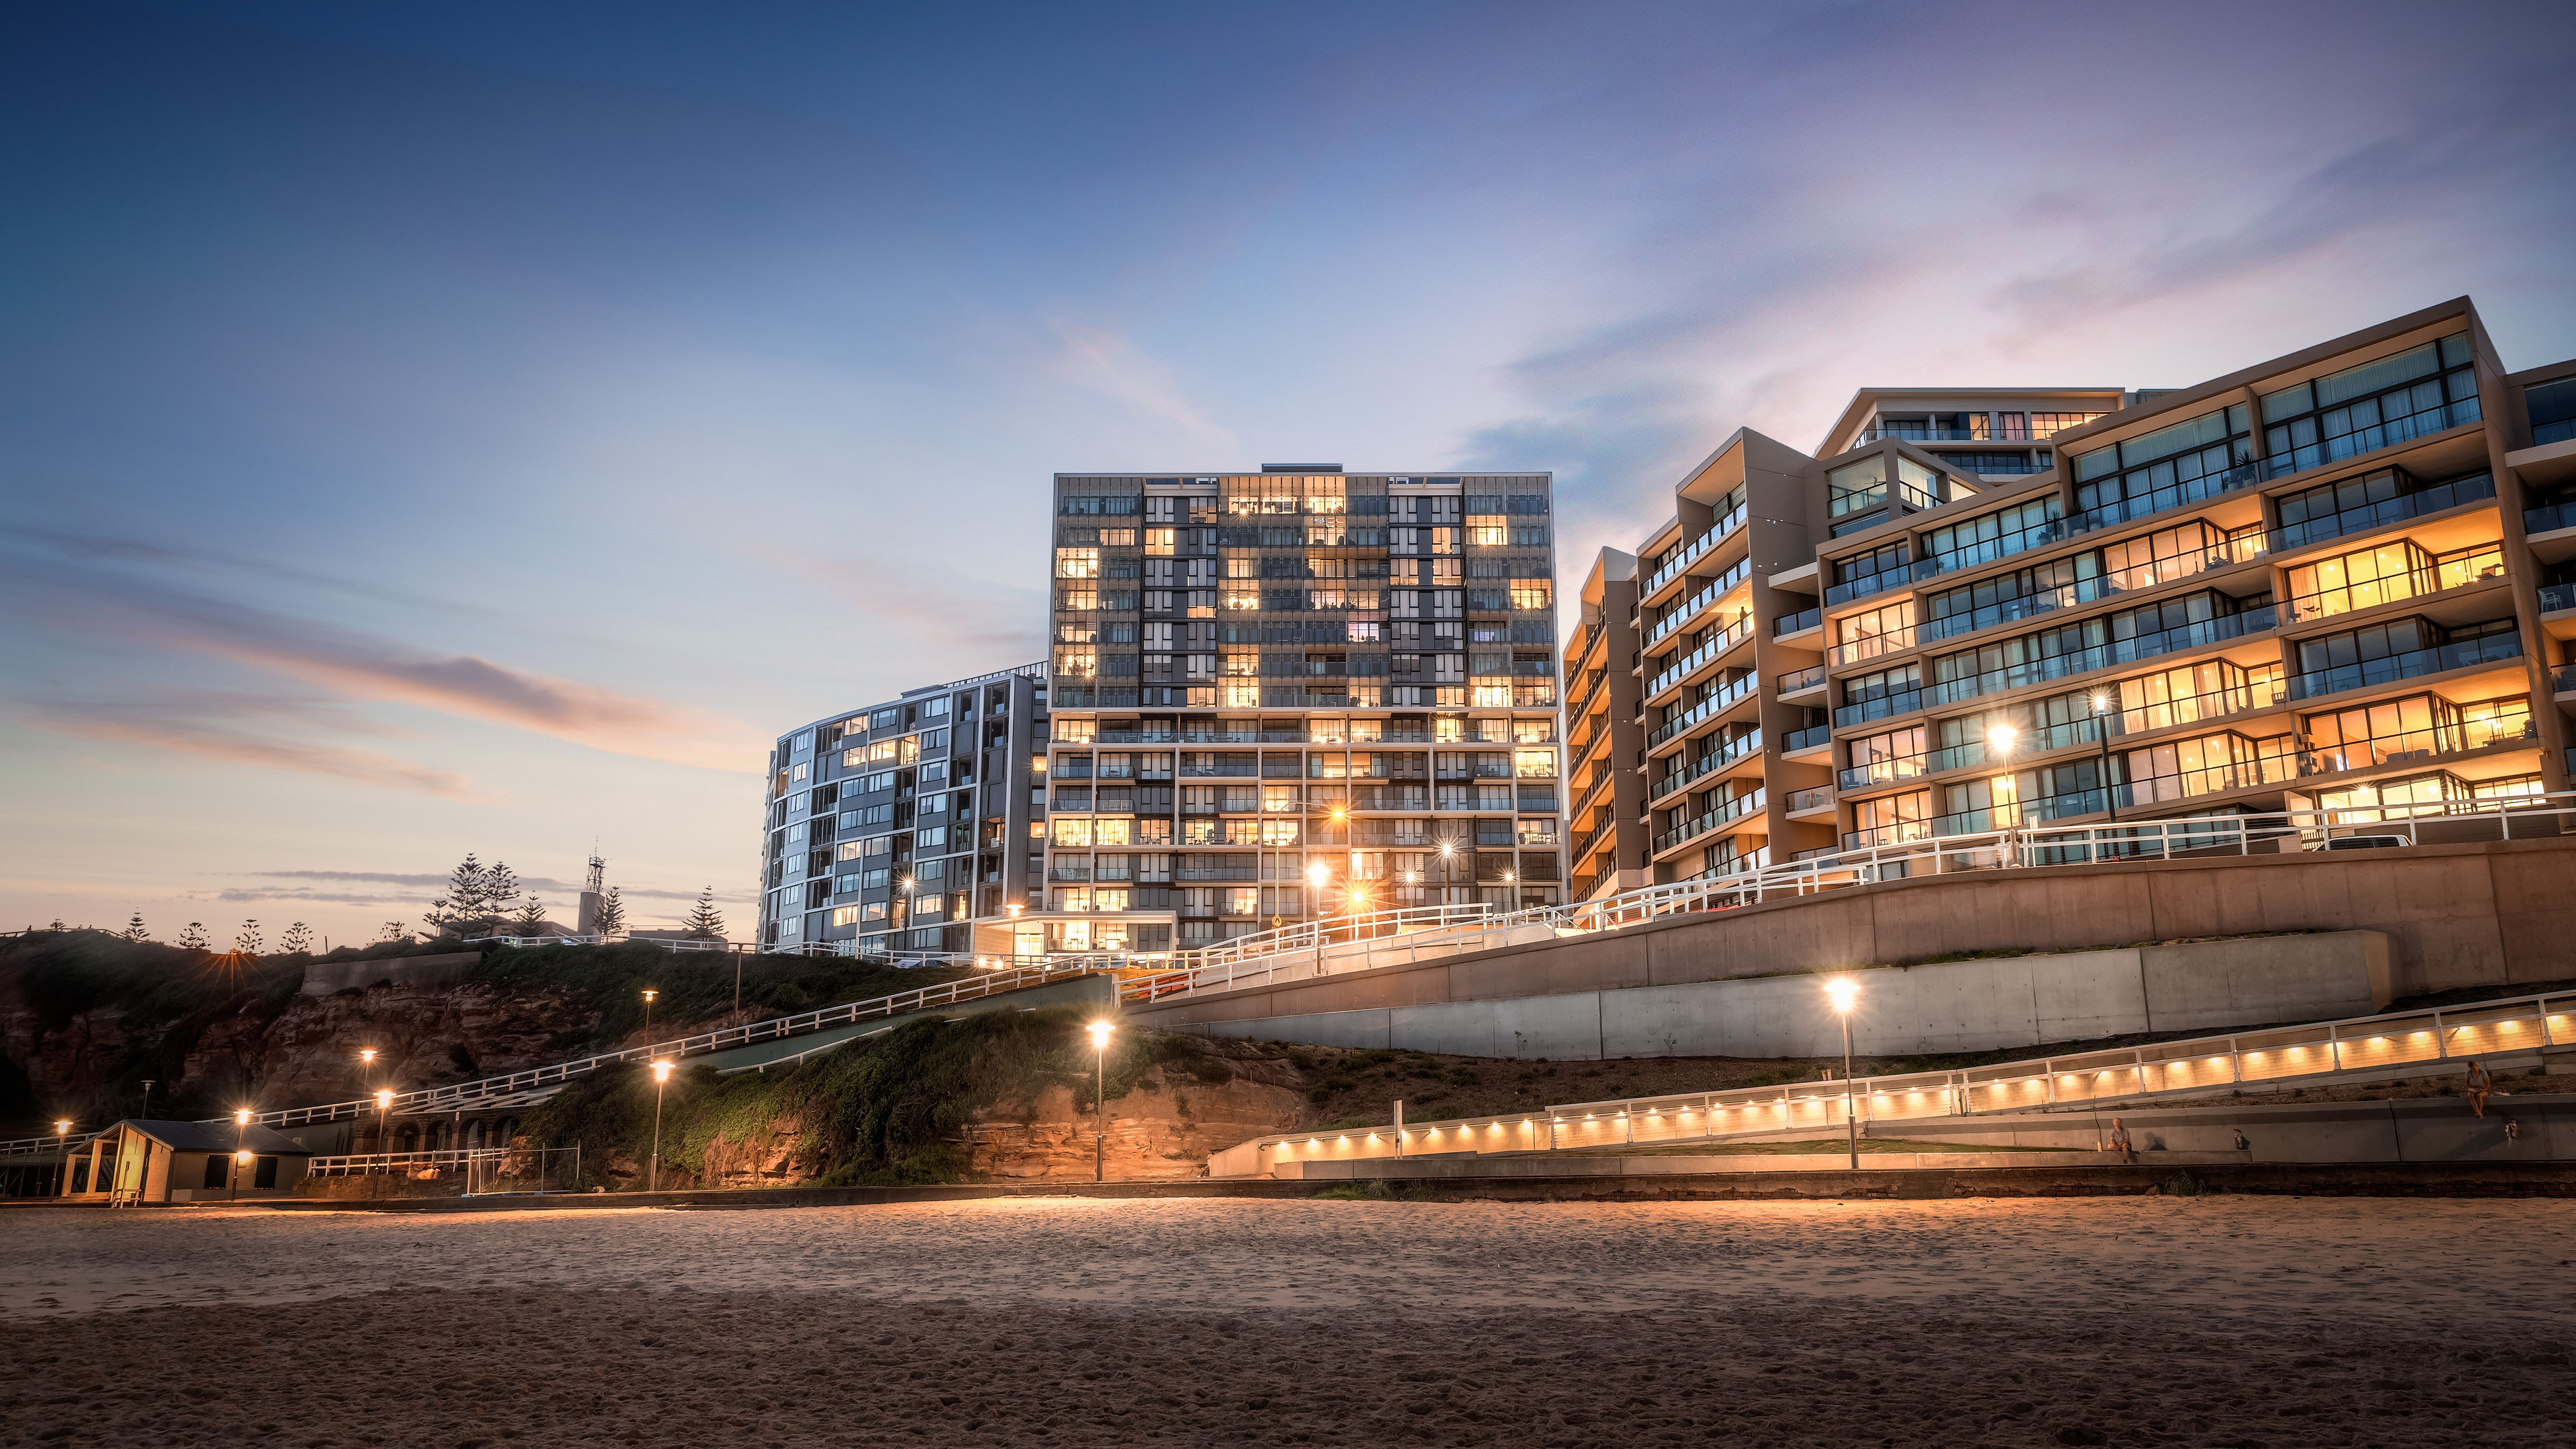 Level 14/B1404/75 Shortland Esplanade, Newcastle